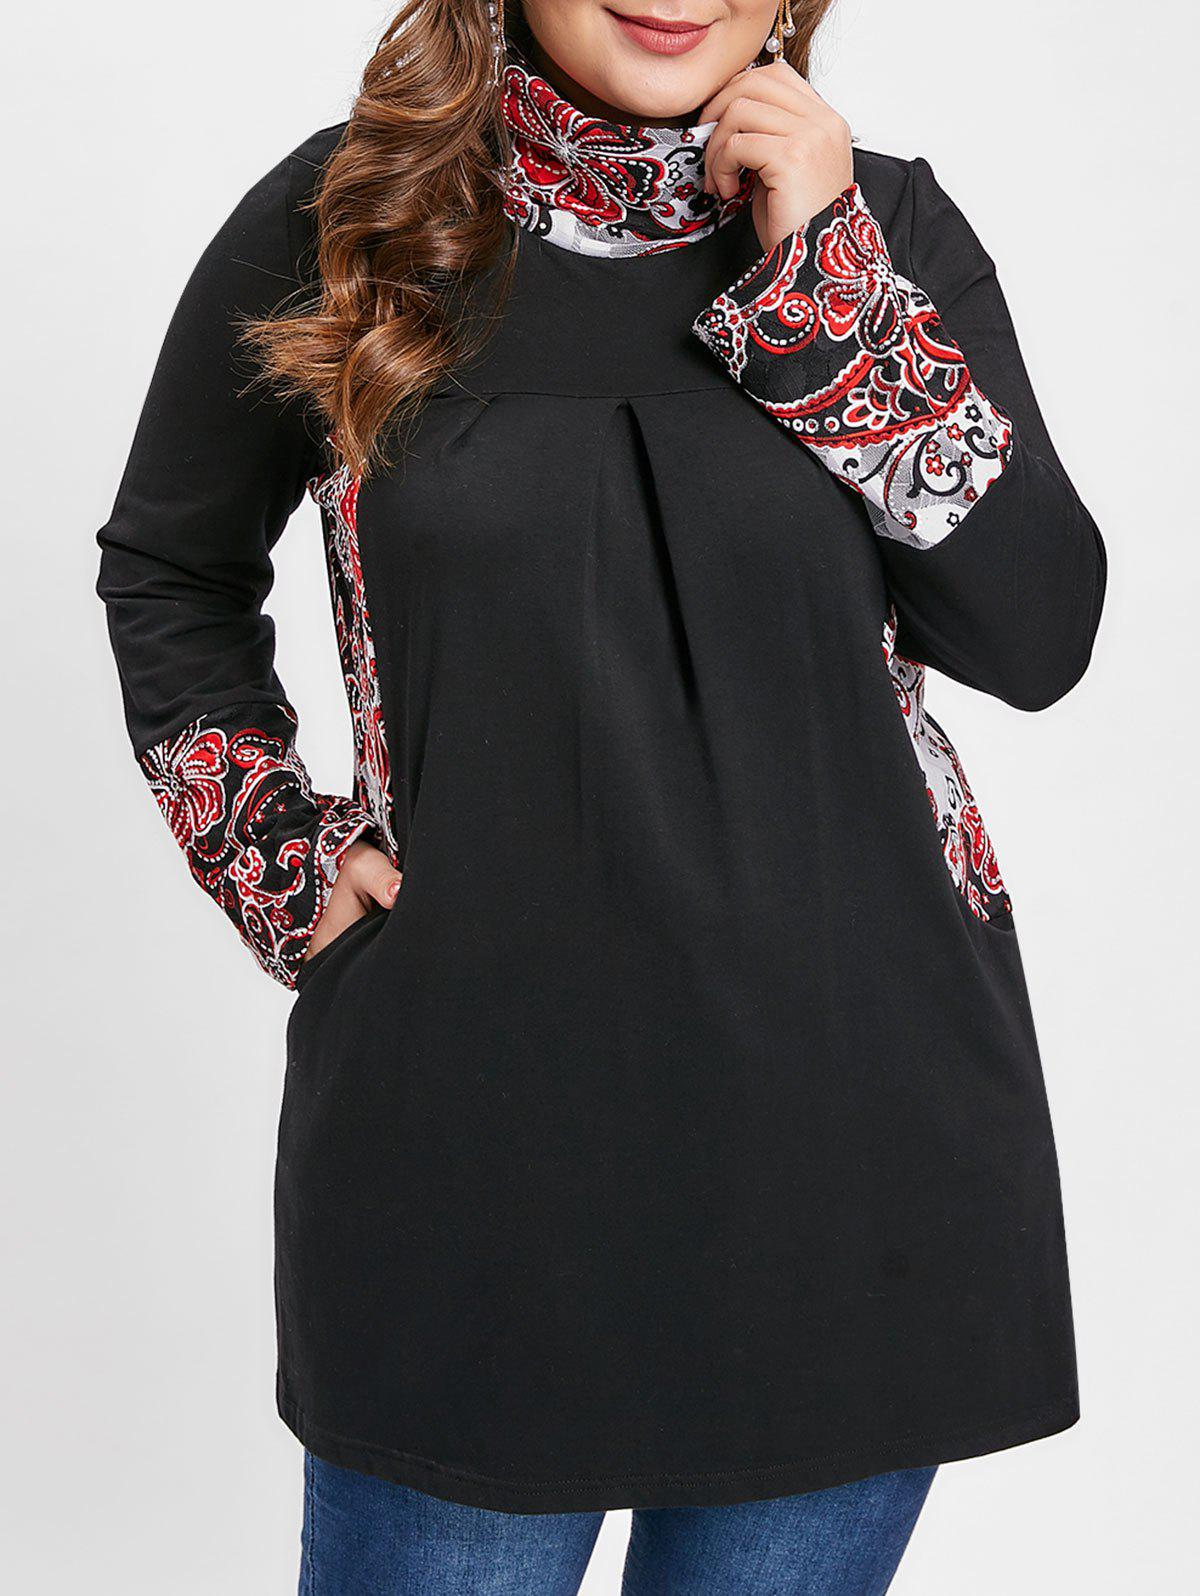 Plus Size Ethnic Print Splicing T-shirt, Black